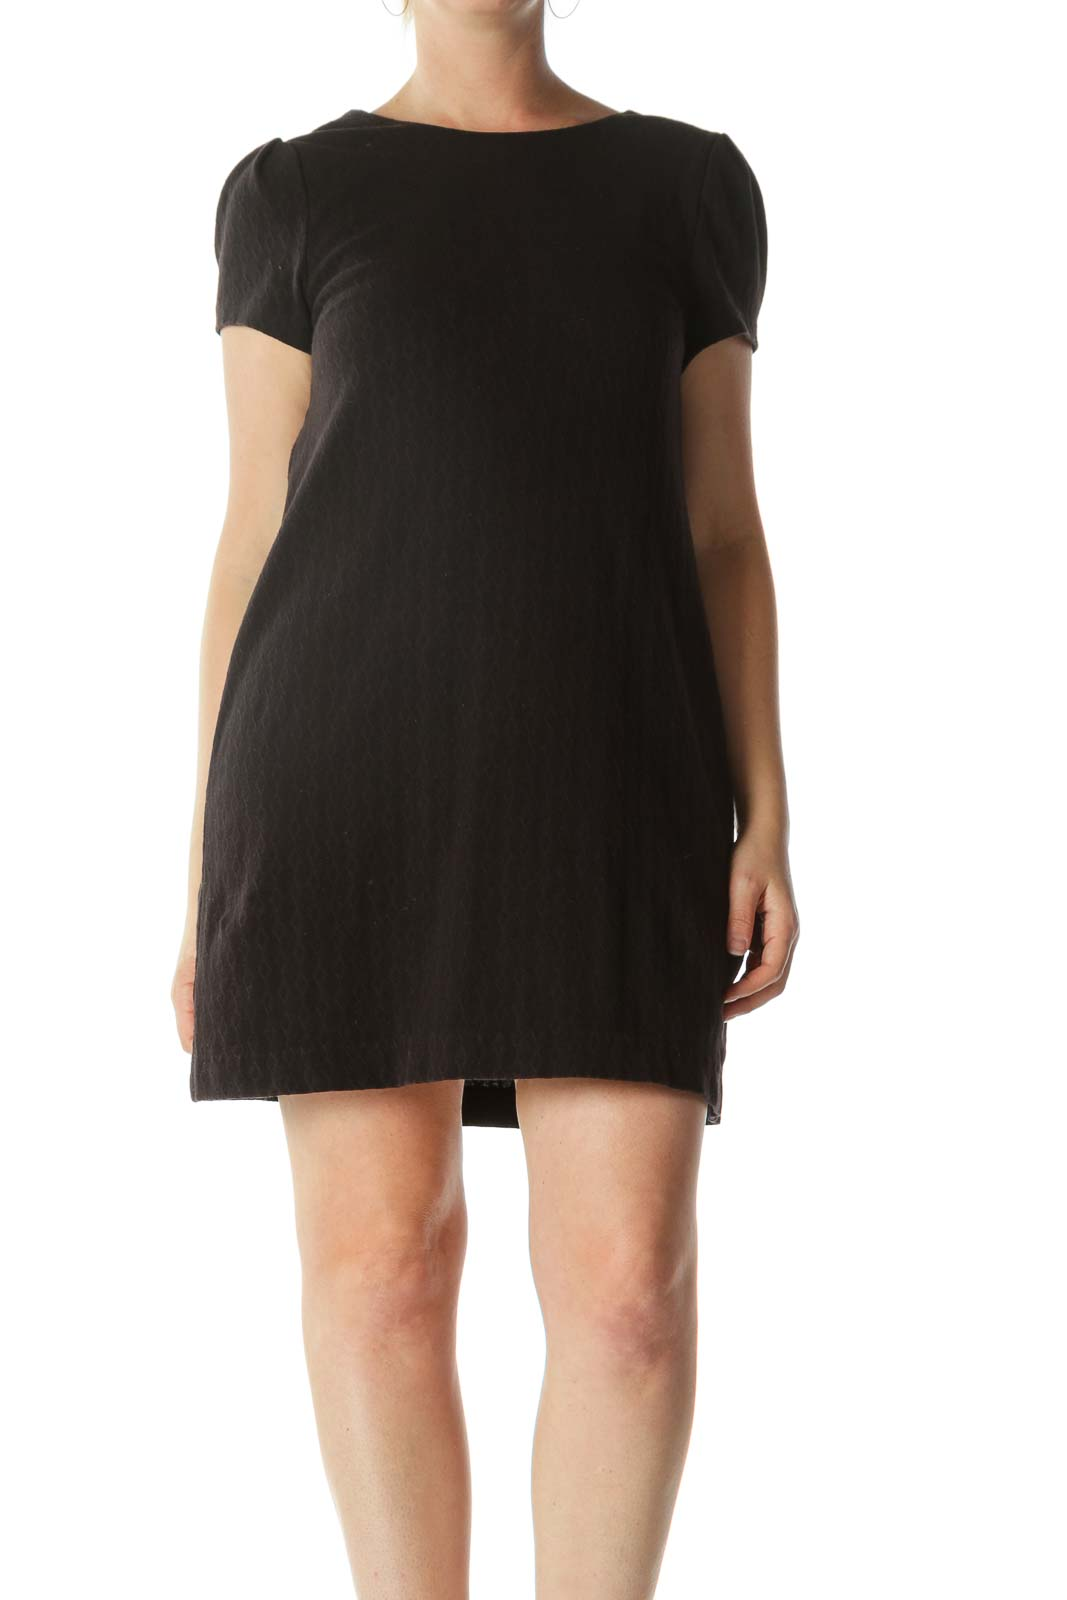 Black Textured Short-Sleeve Knit Dress Front